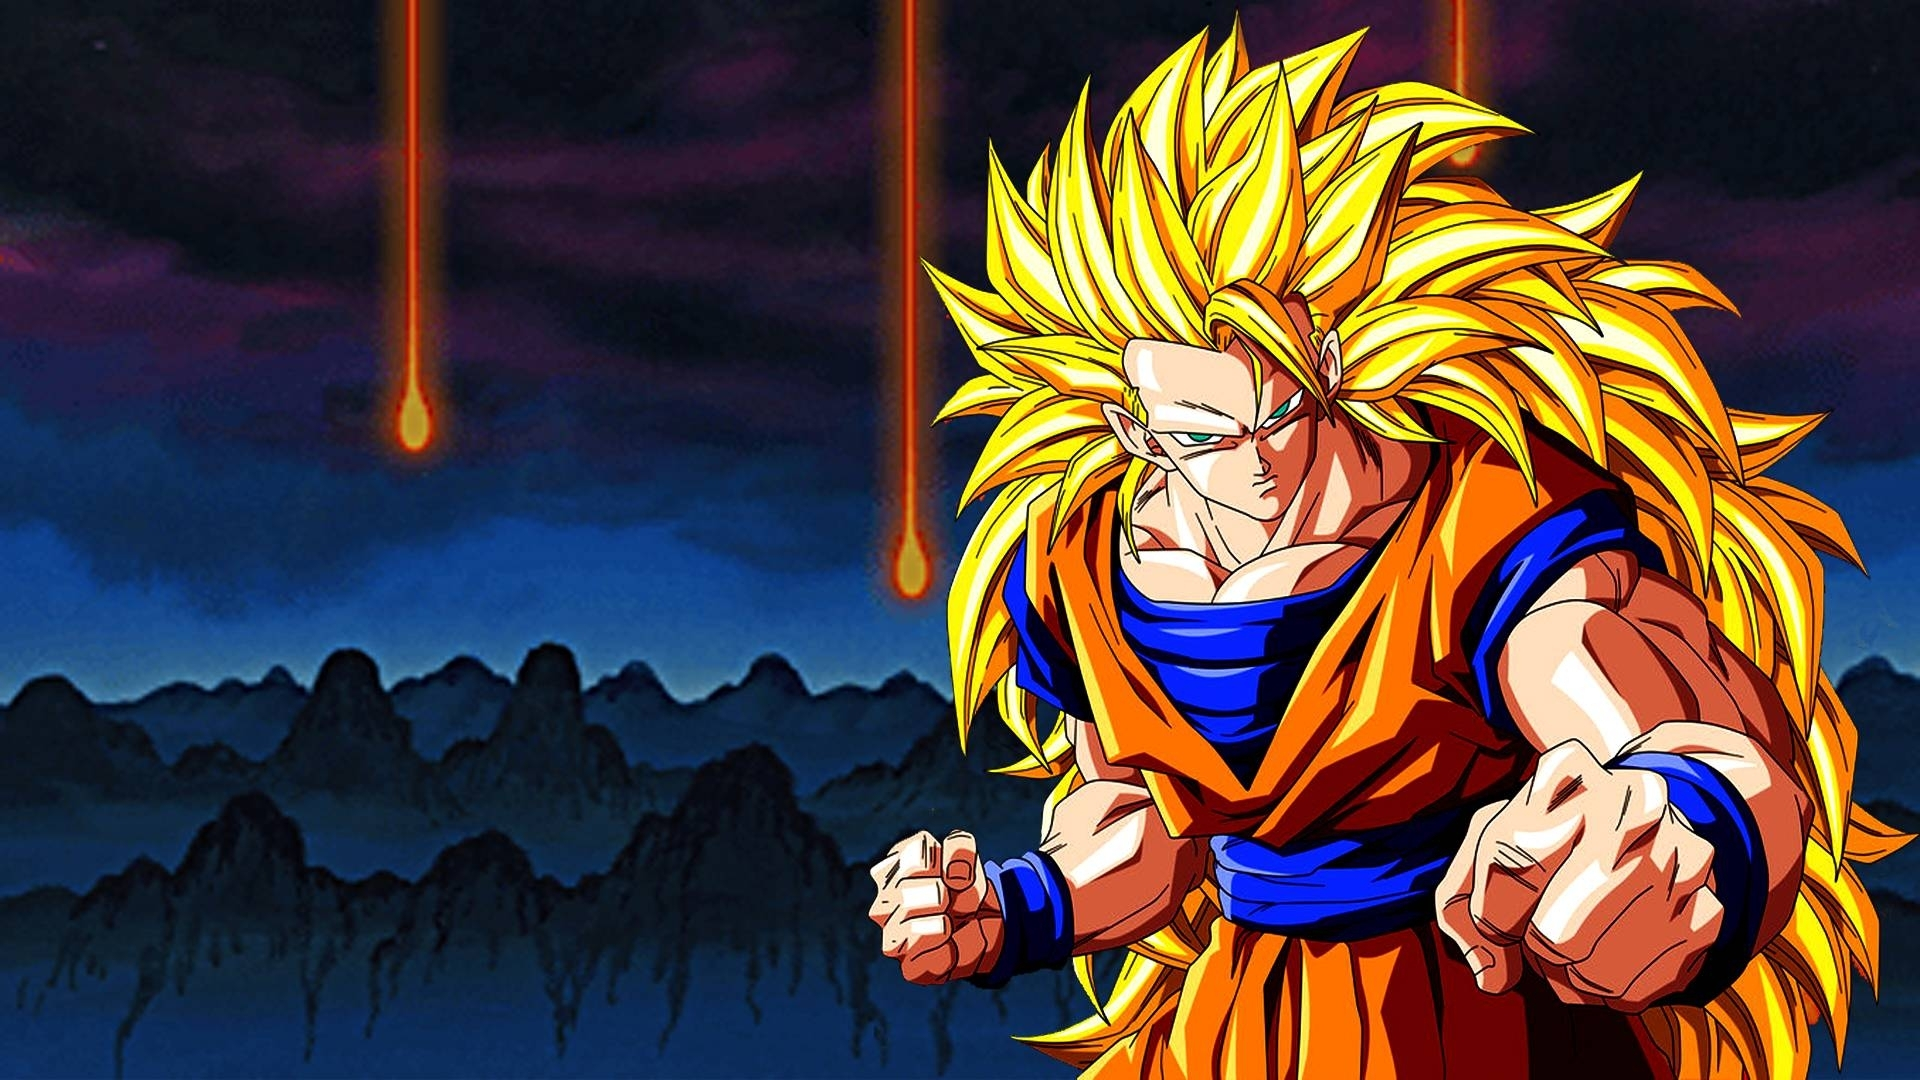 best hd dragon ball z wallpapers, 1920x1080 – free download